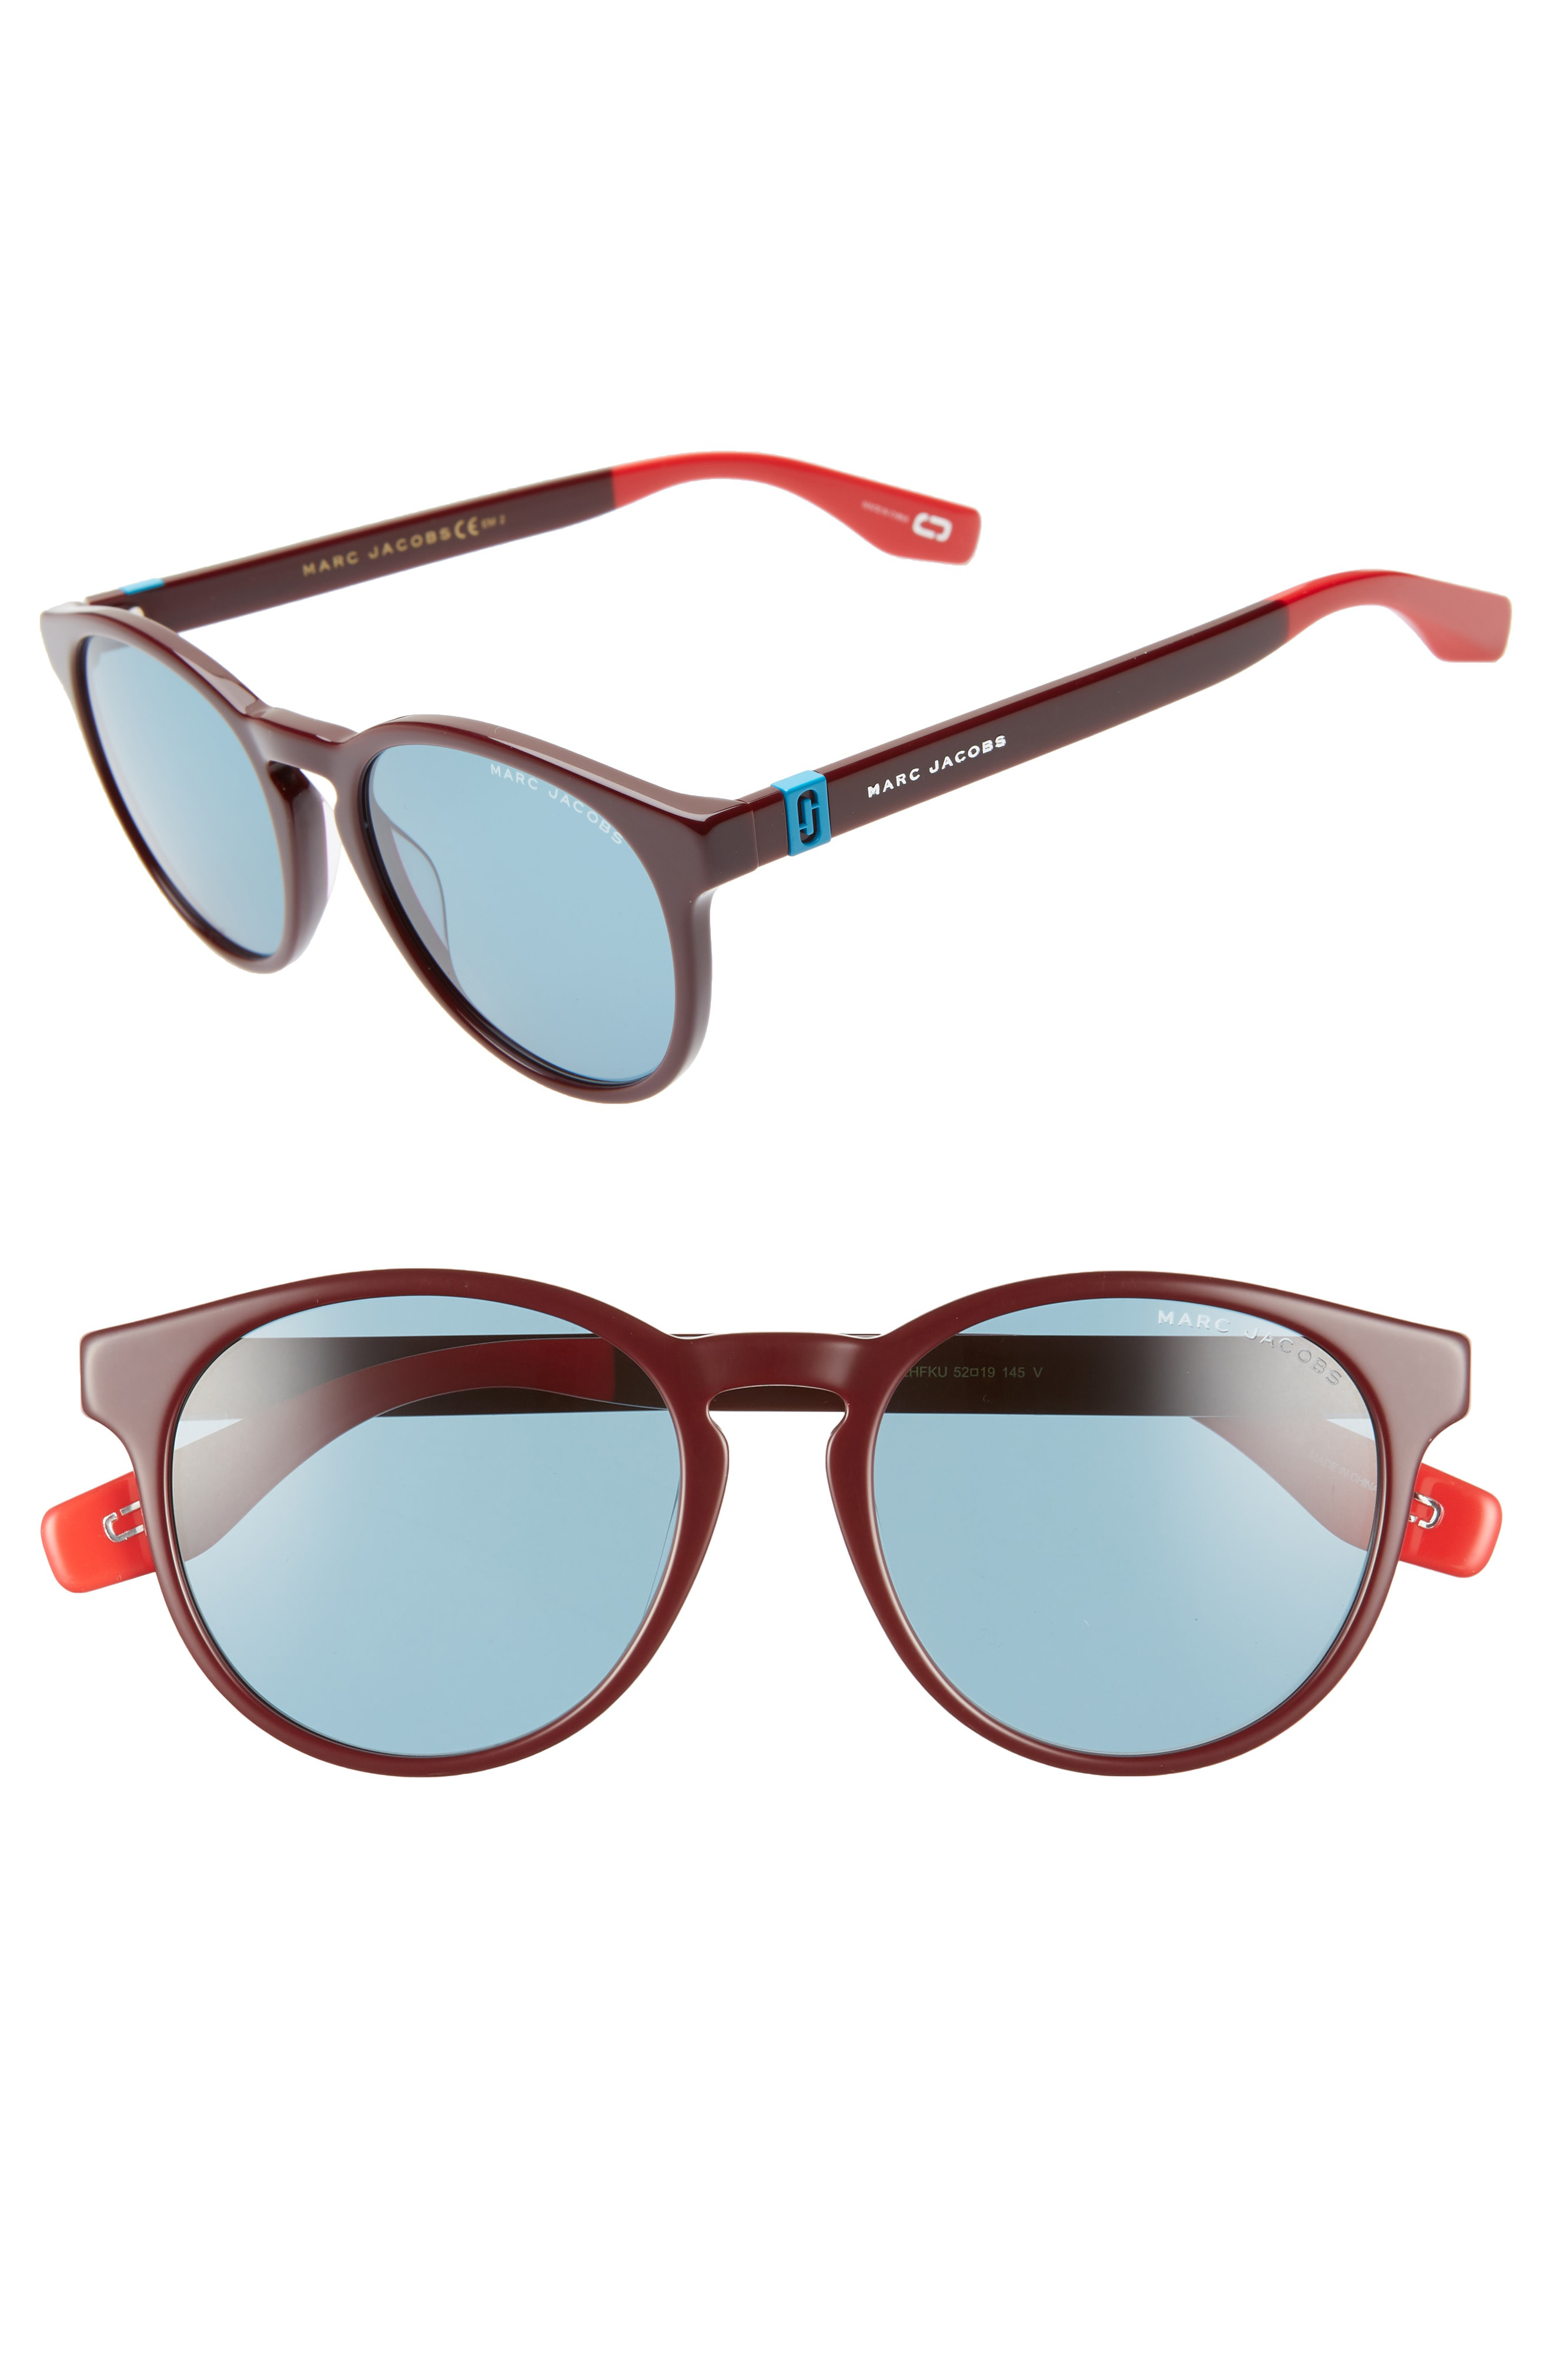 b5bb45787a Style Name  Marc Jacobs 52Mm Round Sunglasses. Style Number  5711531.  Available in stores.